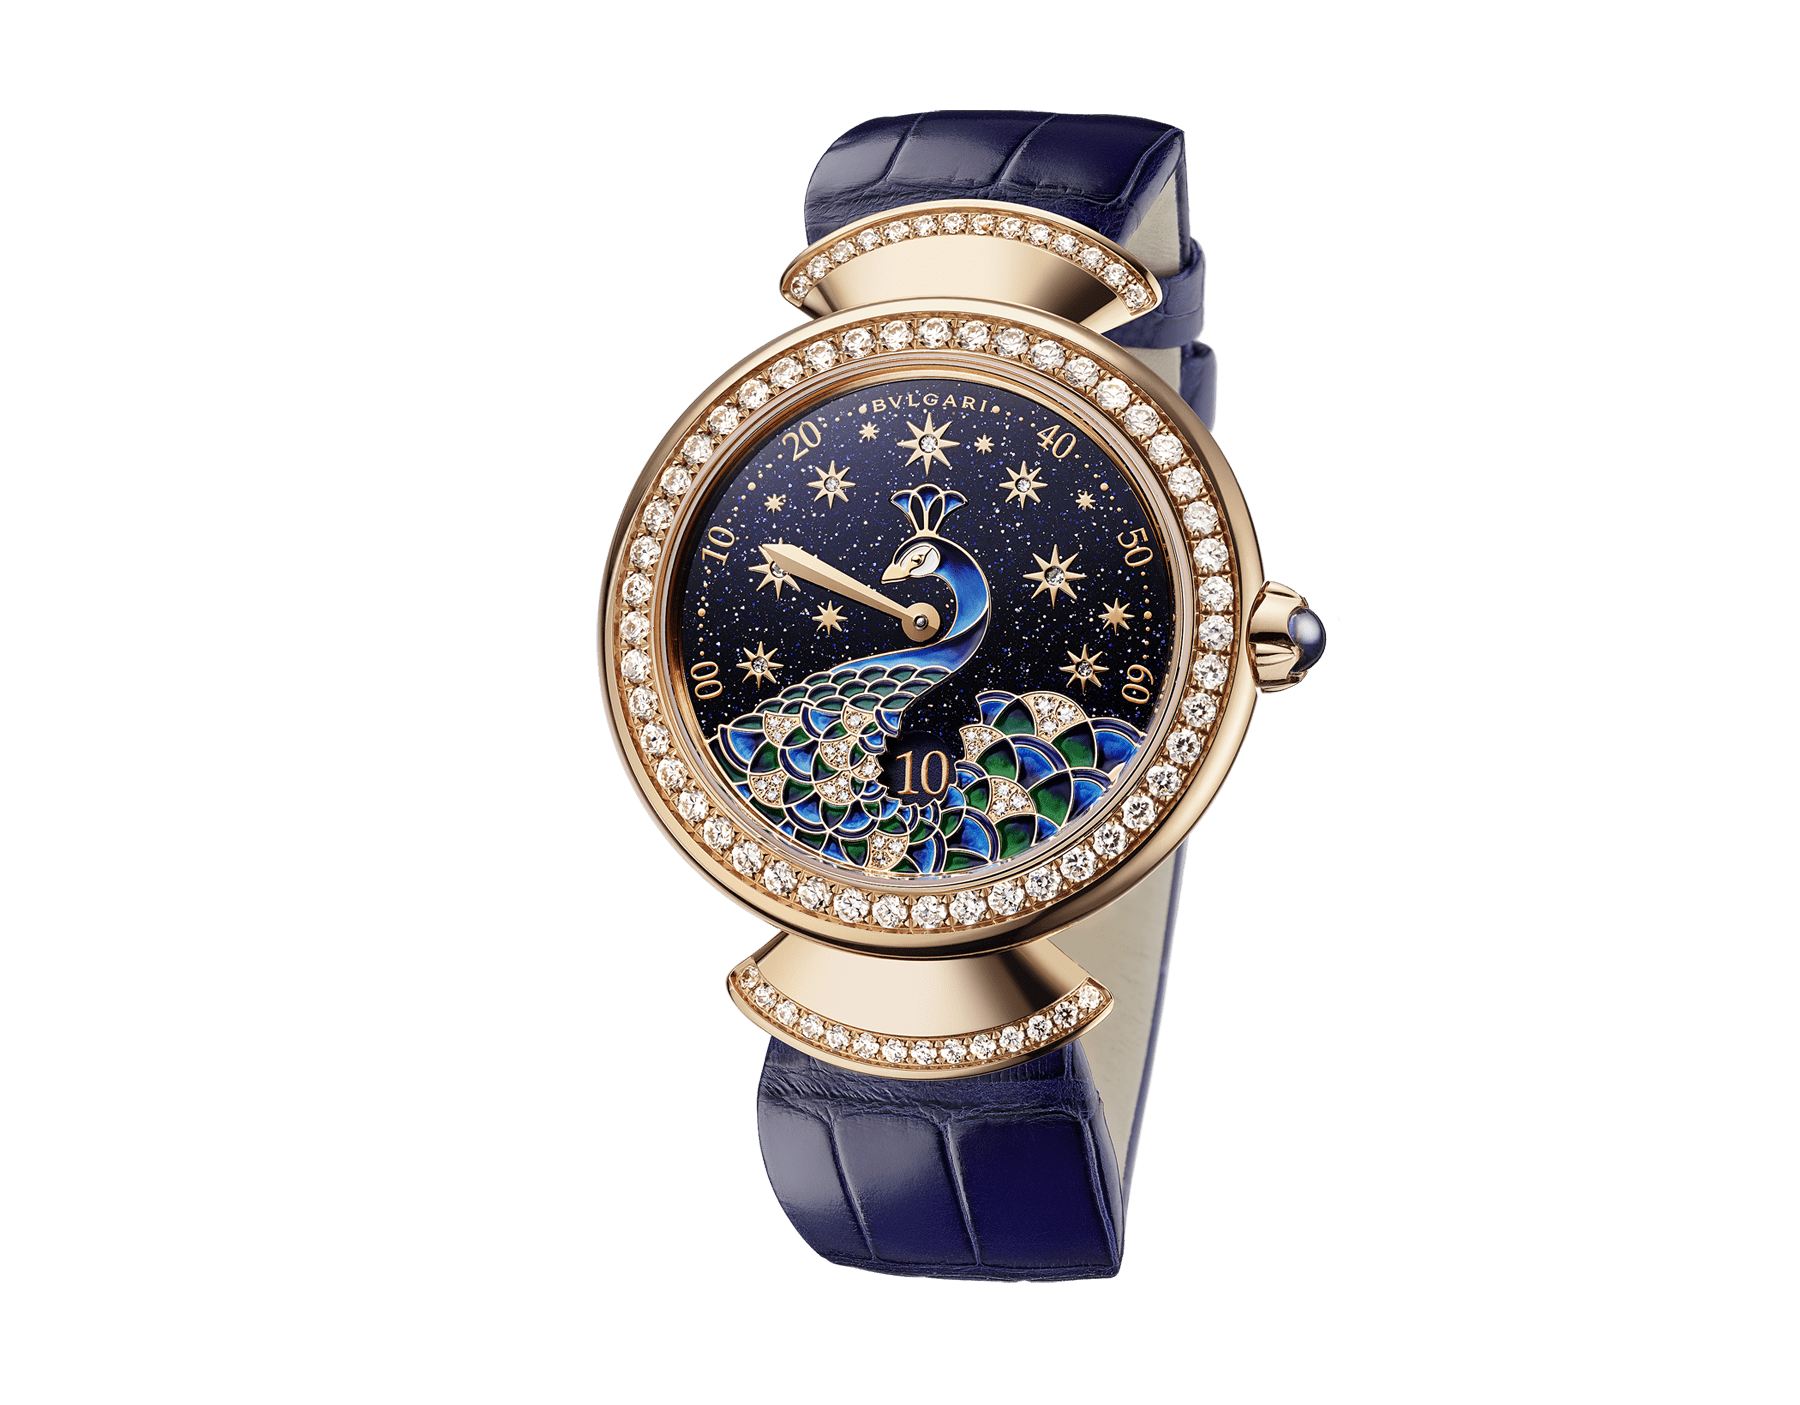 DIVAS' DREAM watch with mechanical manufacture movement, automatic winding, jumping hours and retrograde minutes (180°). 18 kt rose gold case, 18 kt rose gold bezel and fan-shaped links both set with brilliant-cut diamonds, aventurine dial with miniature painted peacock, stars and indexes in brilliant-cut diamonds, blue alligator strap 103114 image 2